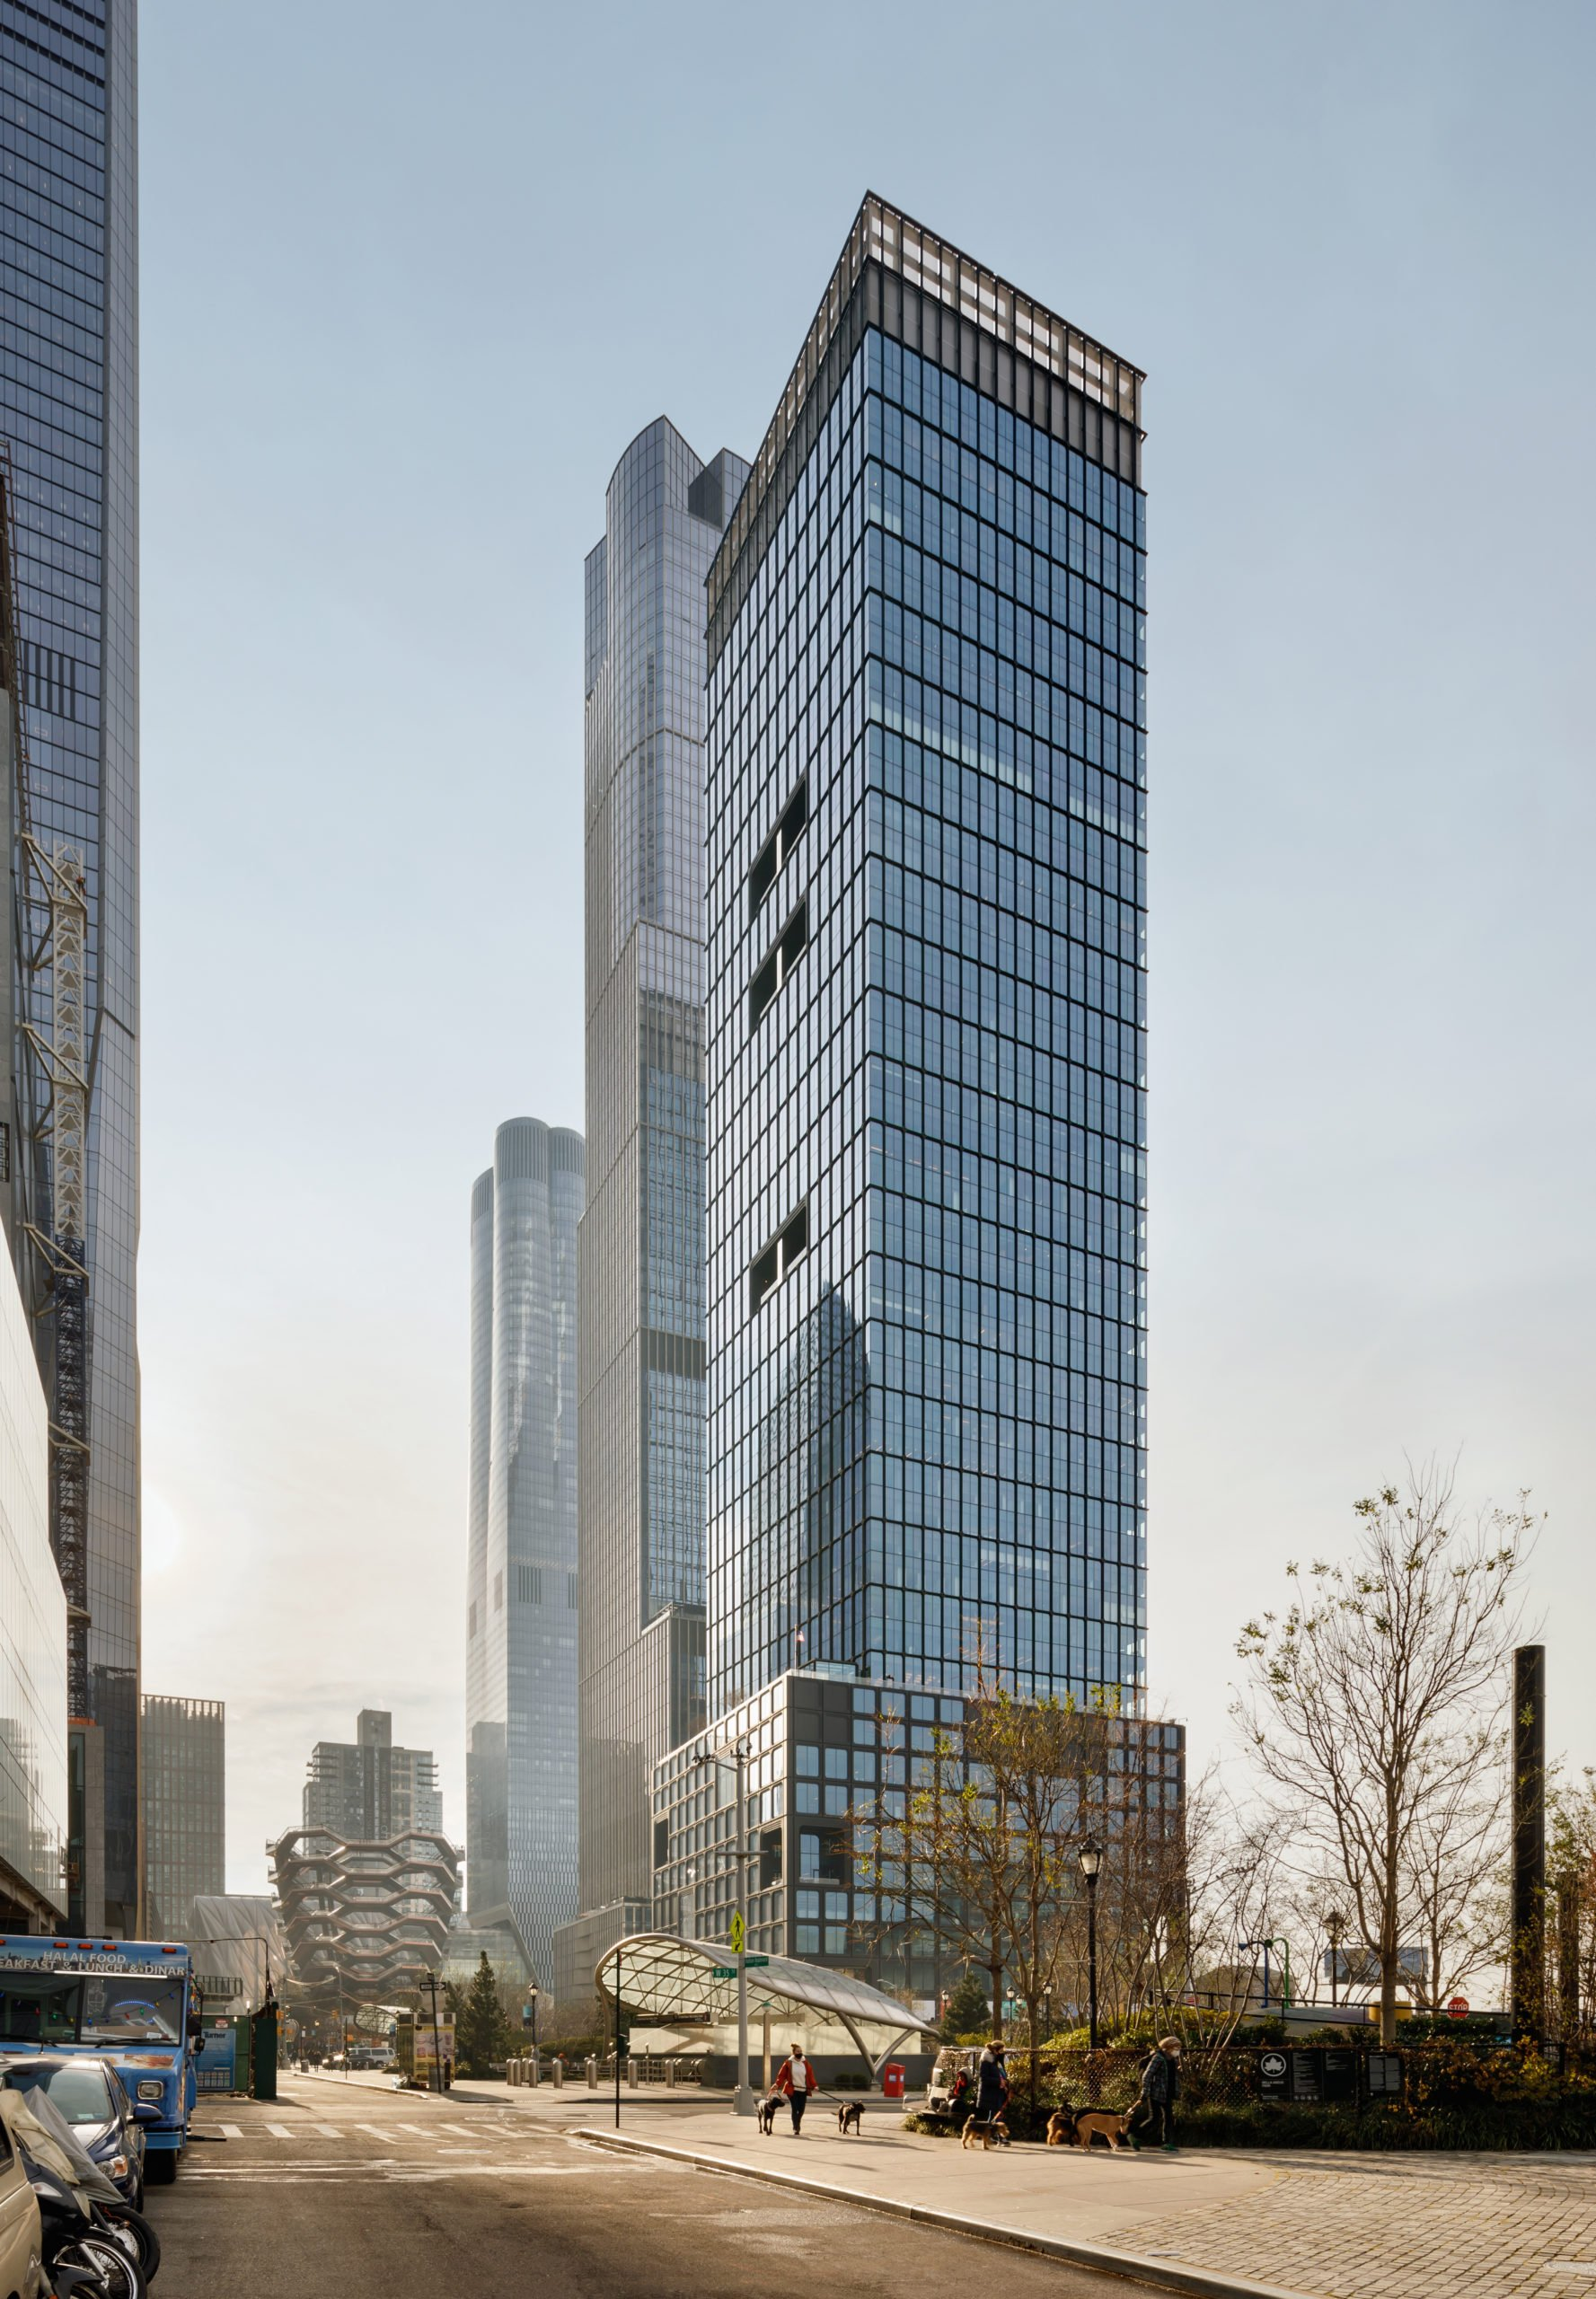 Full View of 55 Hudson Yards, New York, USA Project